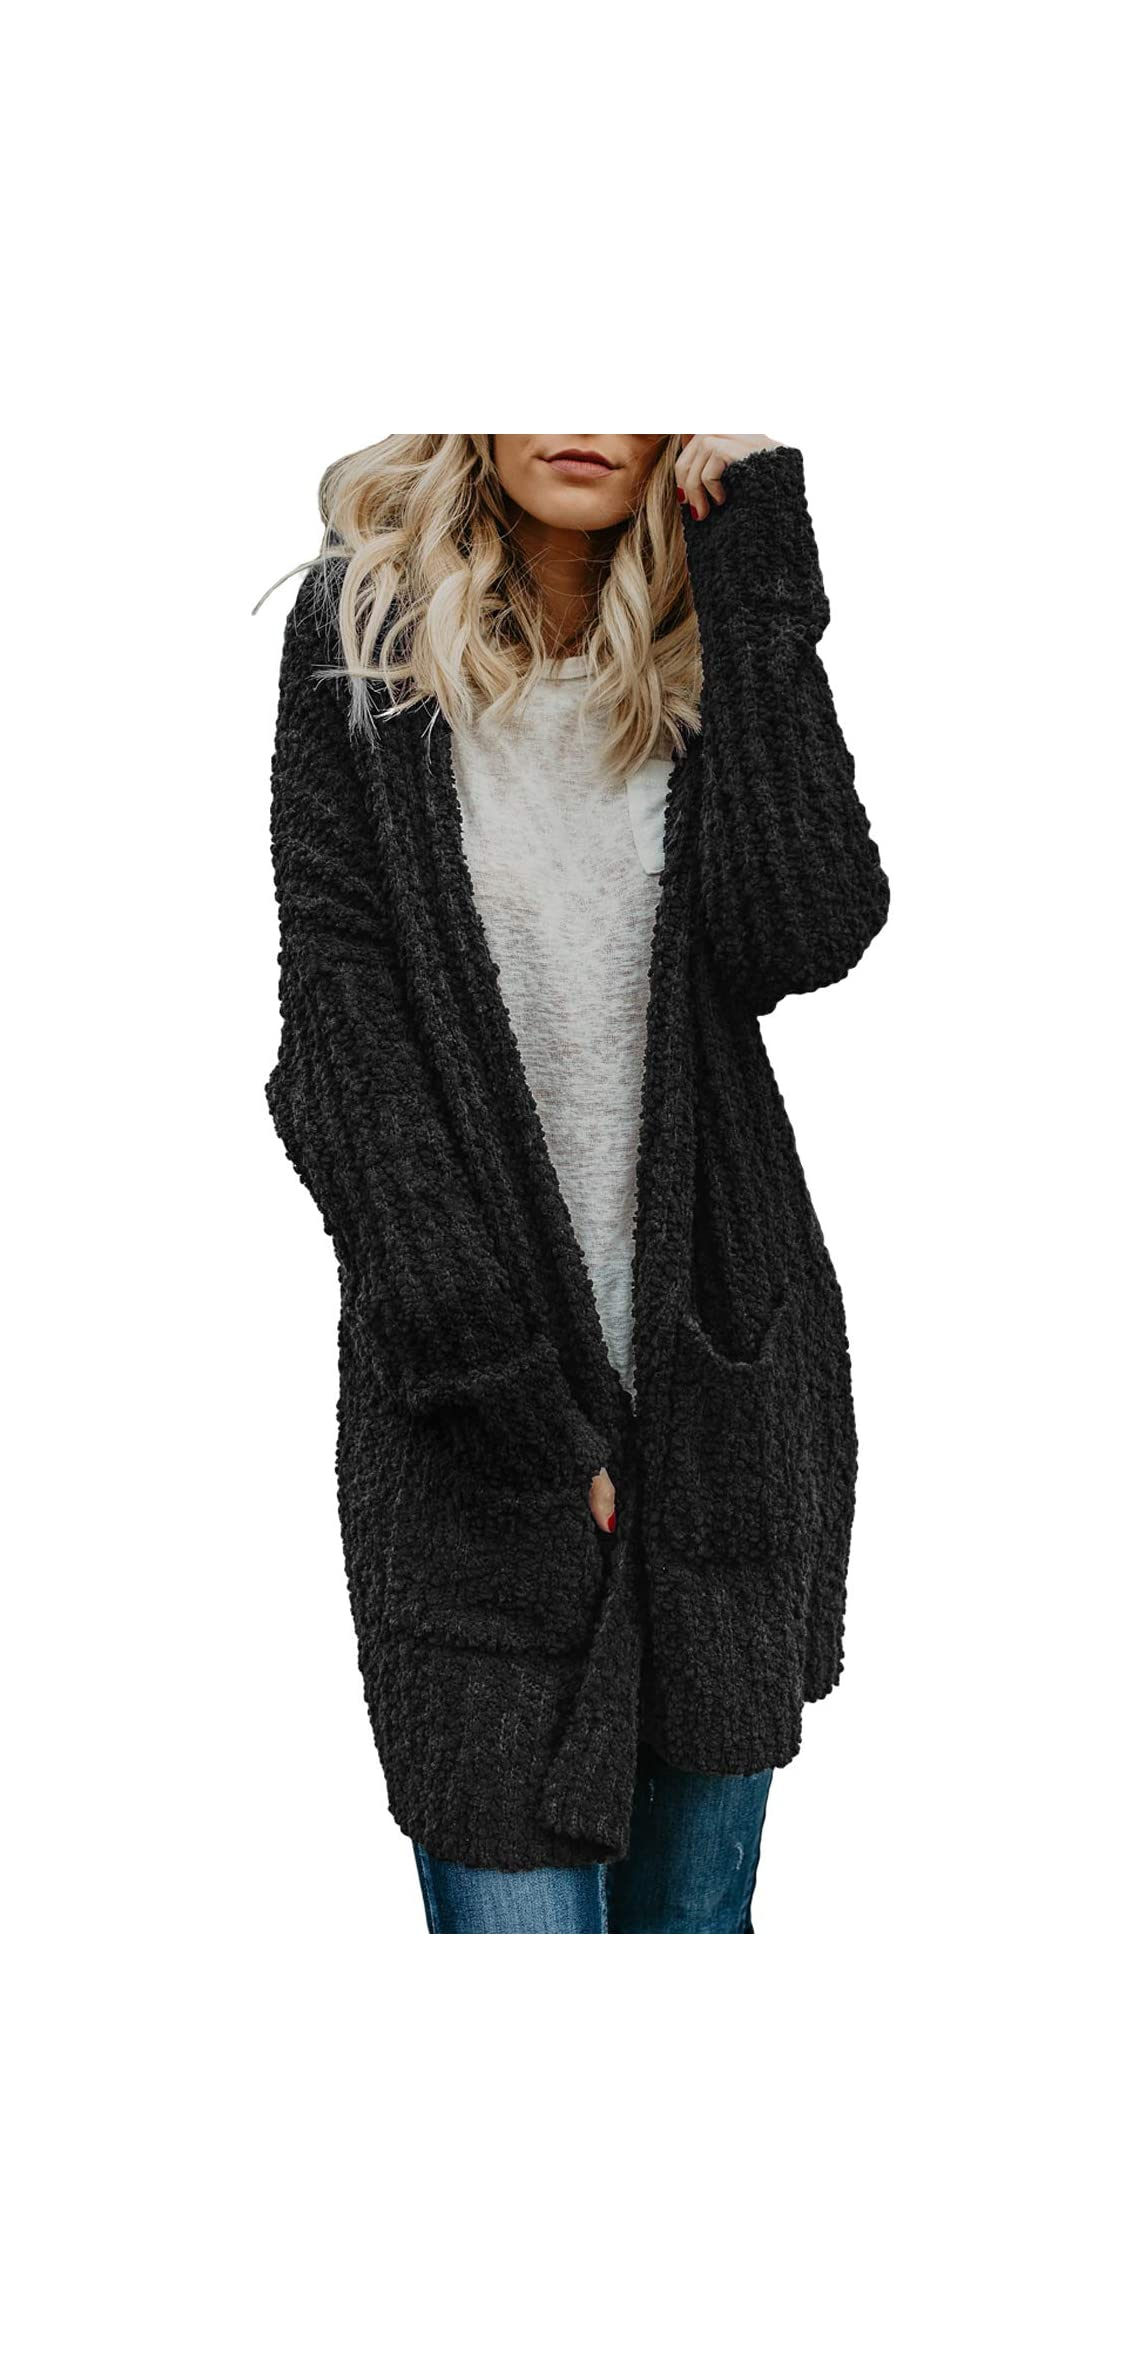 Womens Soft Oversized Open Front Popcorn Sweater With